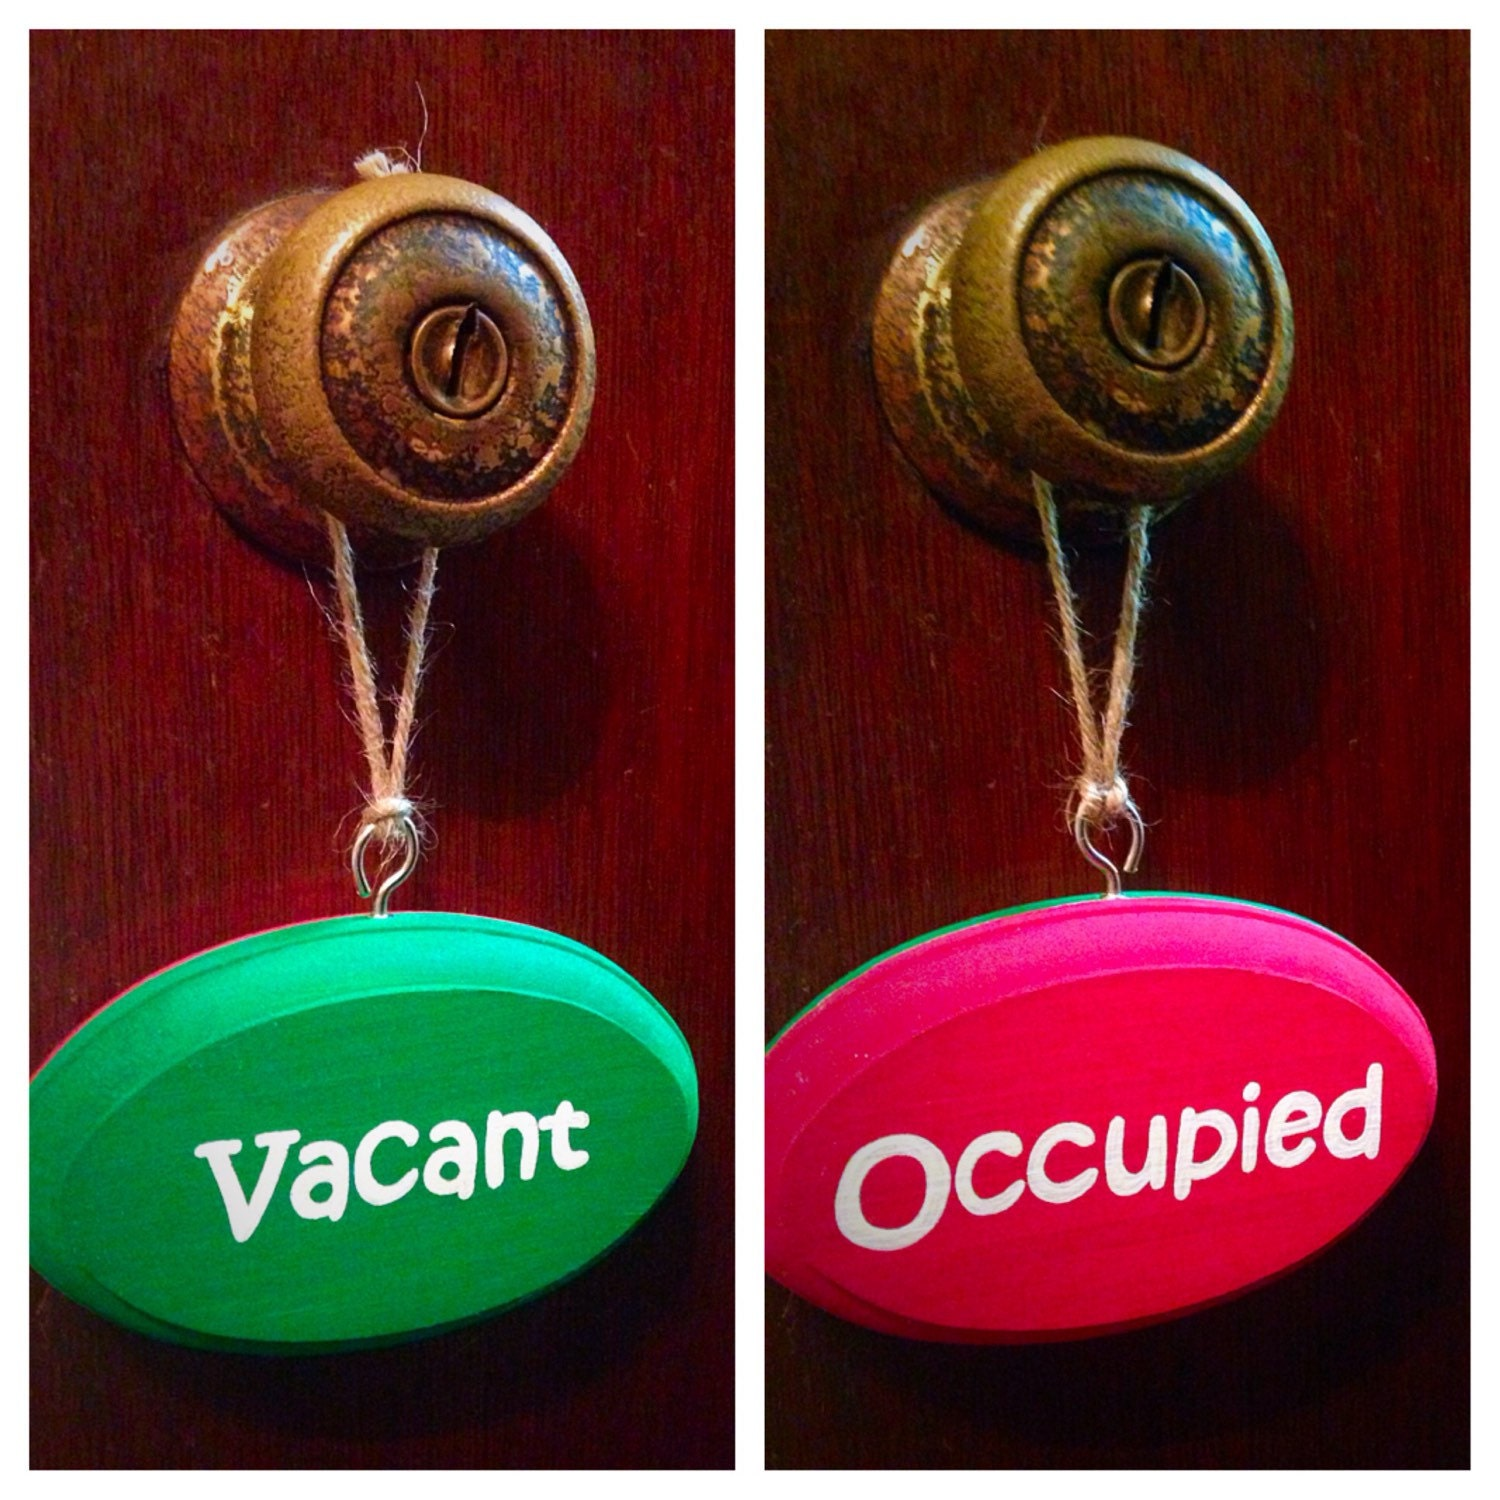 Vacant occupied double sided bathroom sign red green kids for Occupied bathroom sign